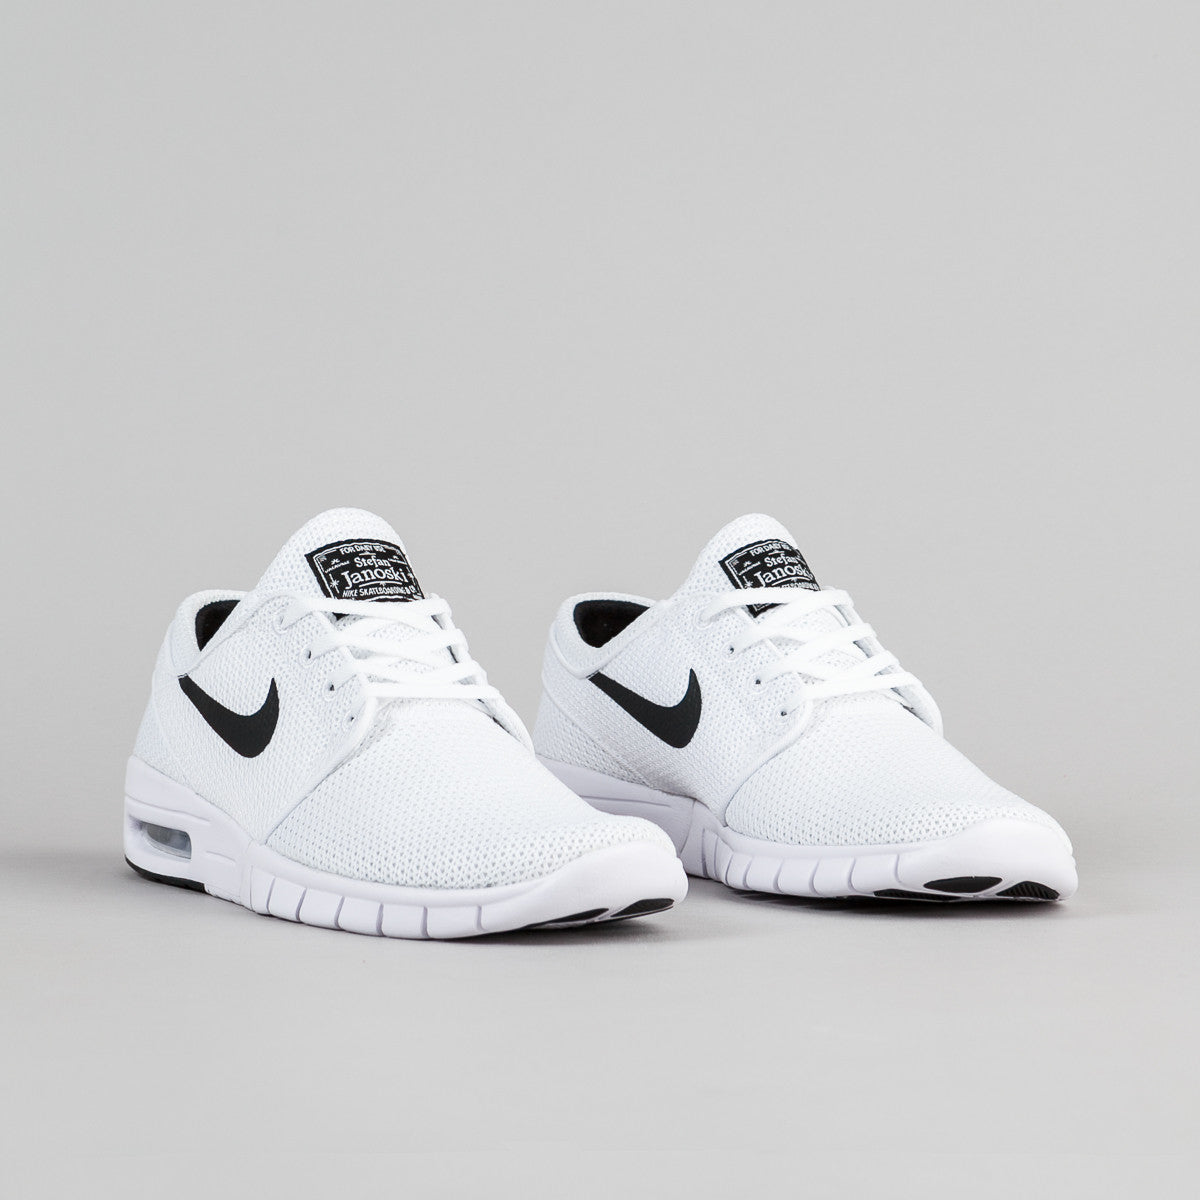 nike sb stefan janoski max shoes white black flatspot. Black Bedroom Furniture Sets. Home Design Ideas